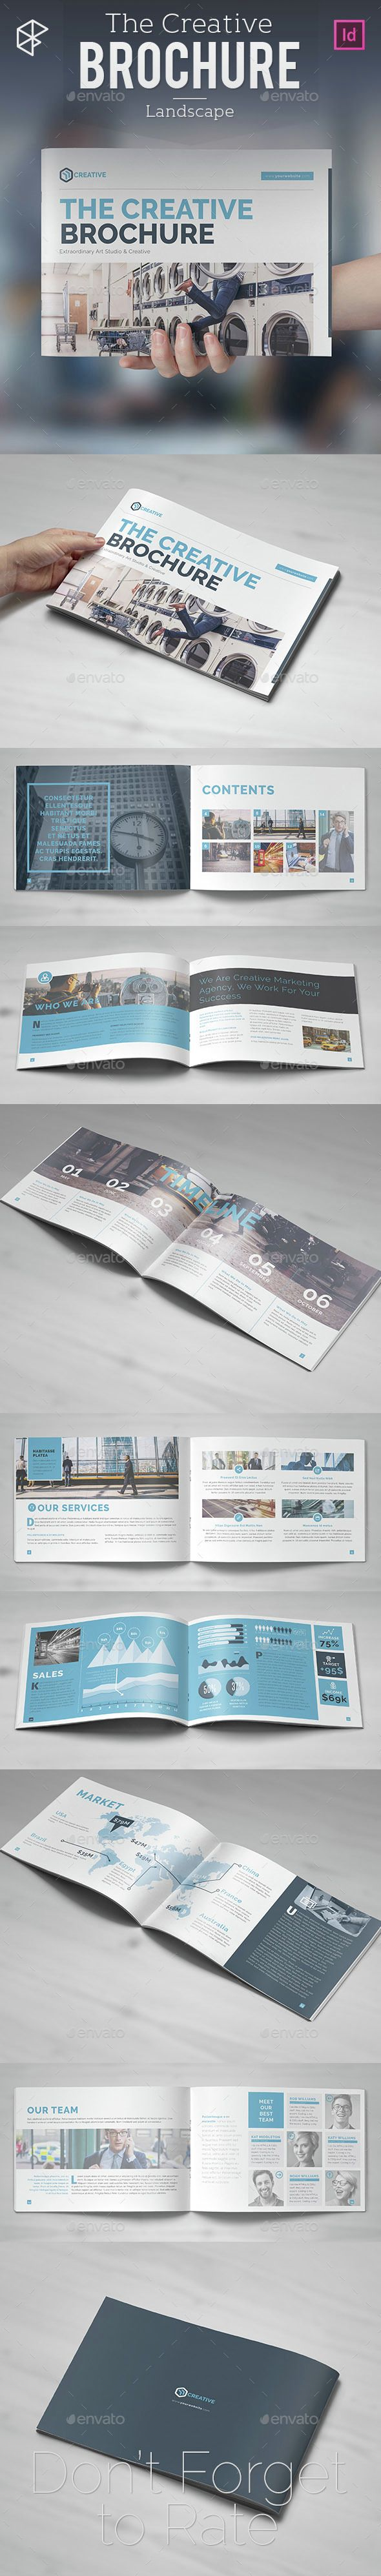 The Creative Brochure - Landscape. Template InDesign INDD. Download here: http://graphicriver.net/item/the-creative-brochure-landscape/14641310?ref=ksioks